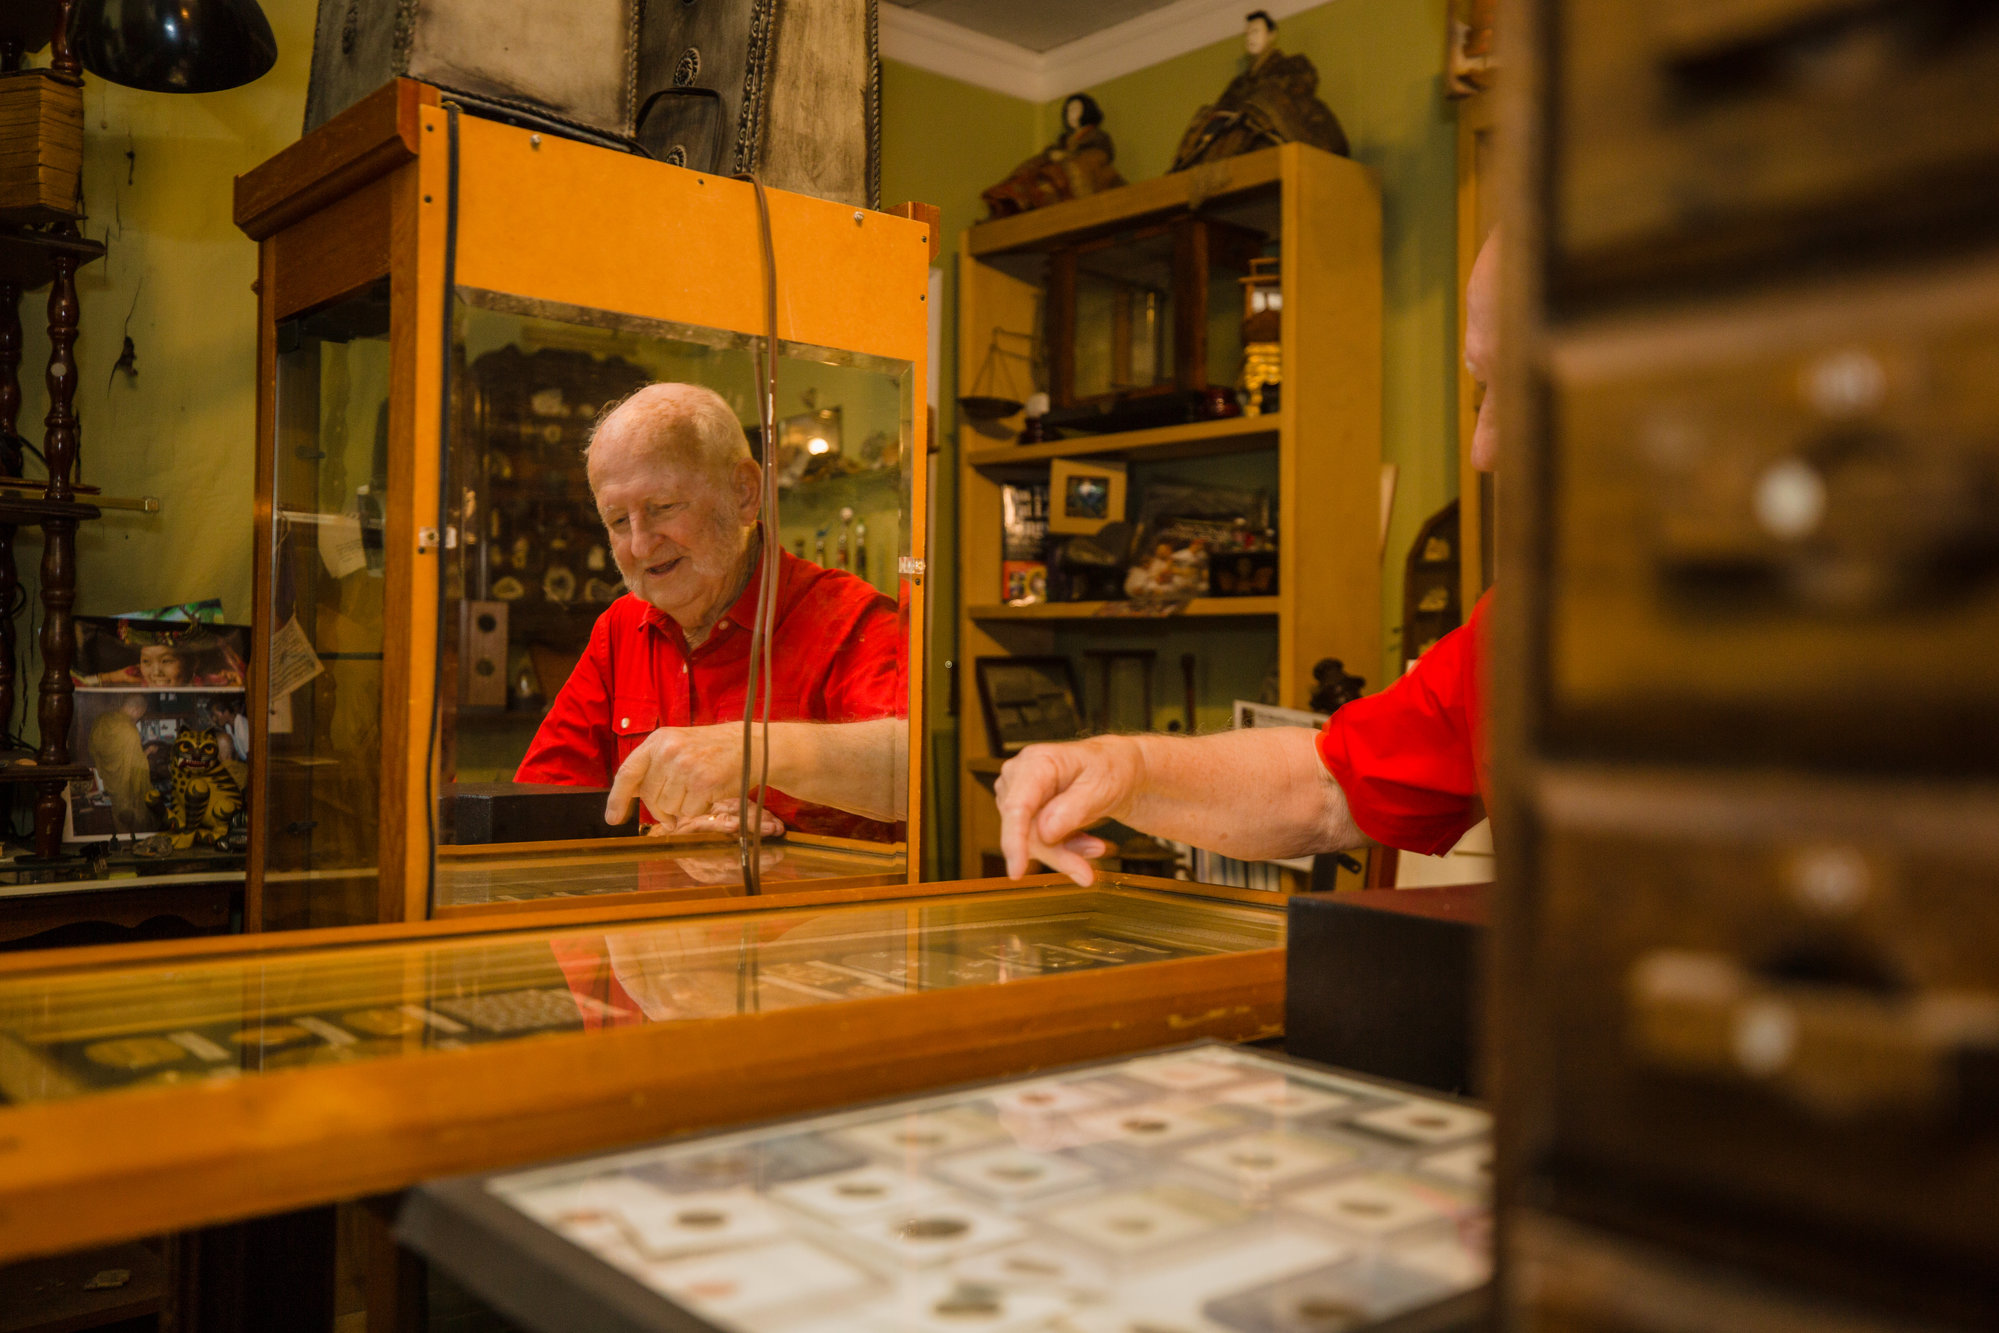 Don Cann looks at coins in his museum, Global Curiosities by The Southern Cross, on Friday. He recently bought a 1962 Studebaker Gran Turismo Hawk to add to his collection; he thinks it's the only such car in Sumter.